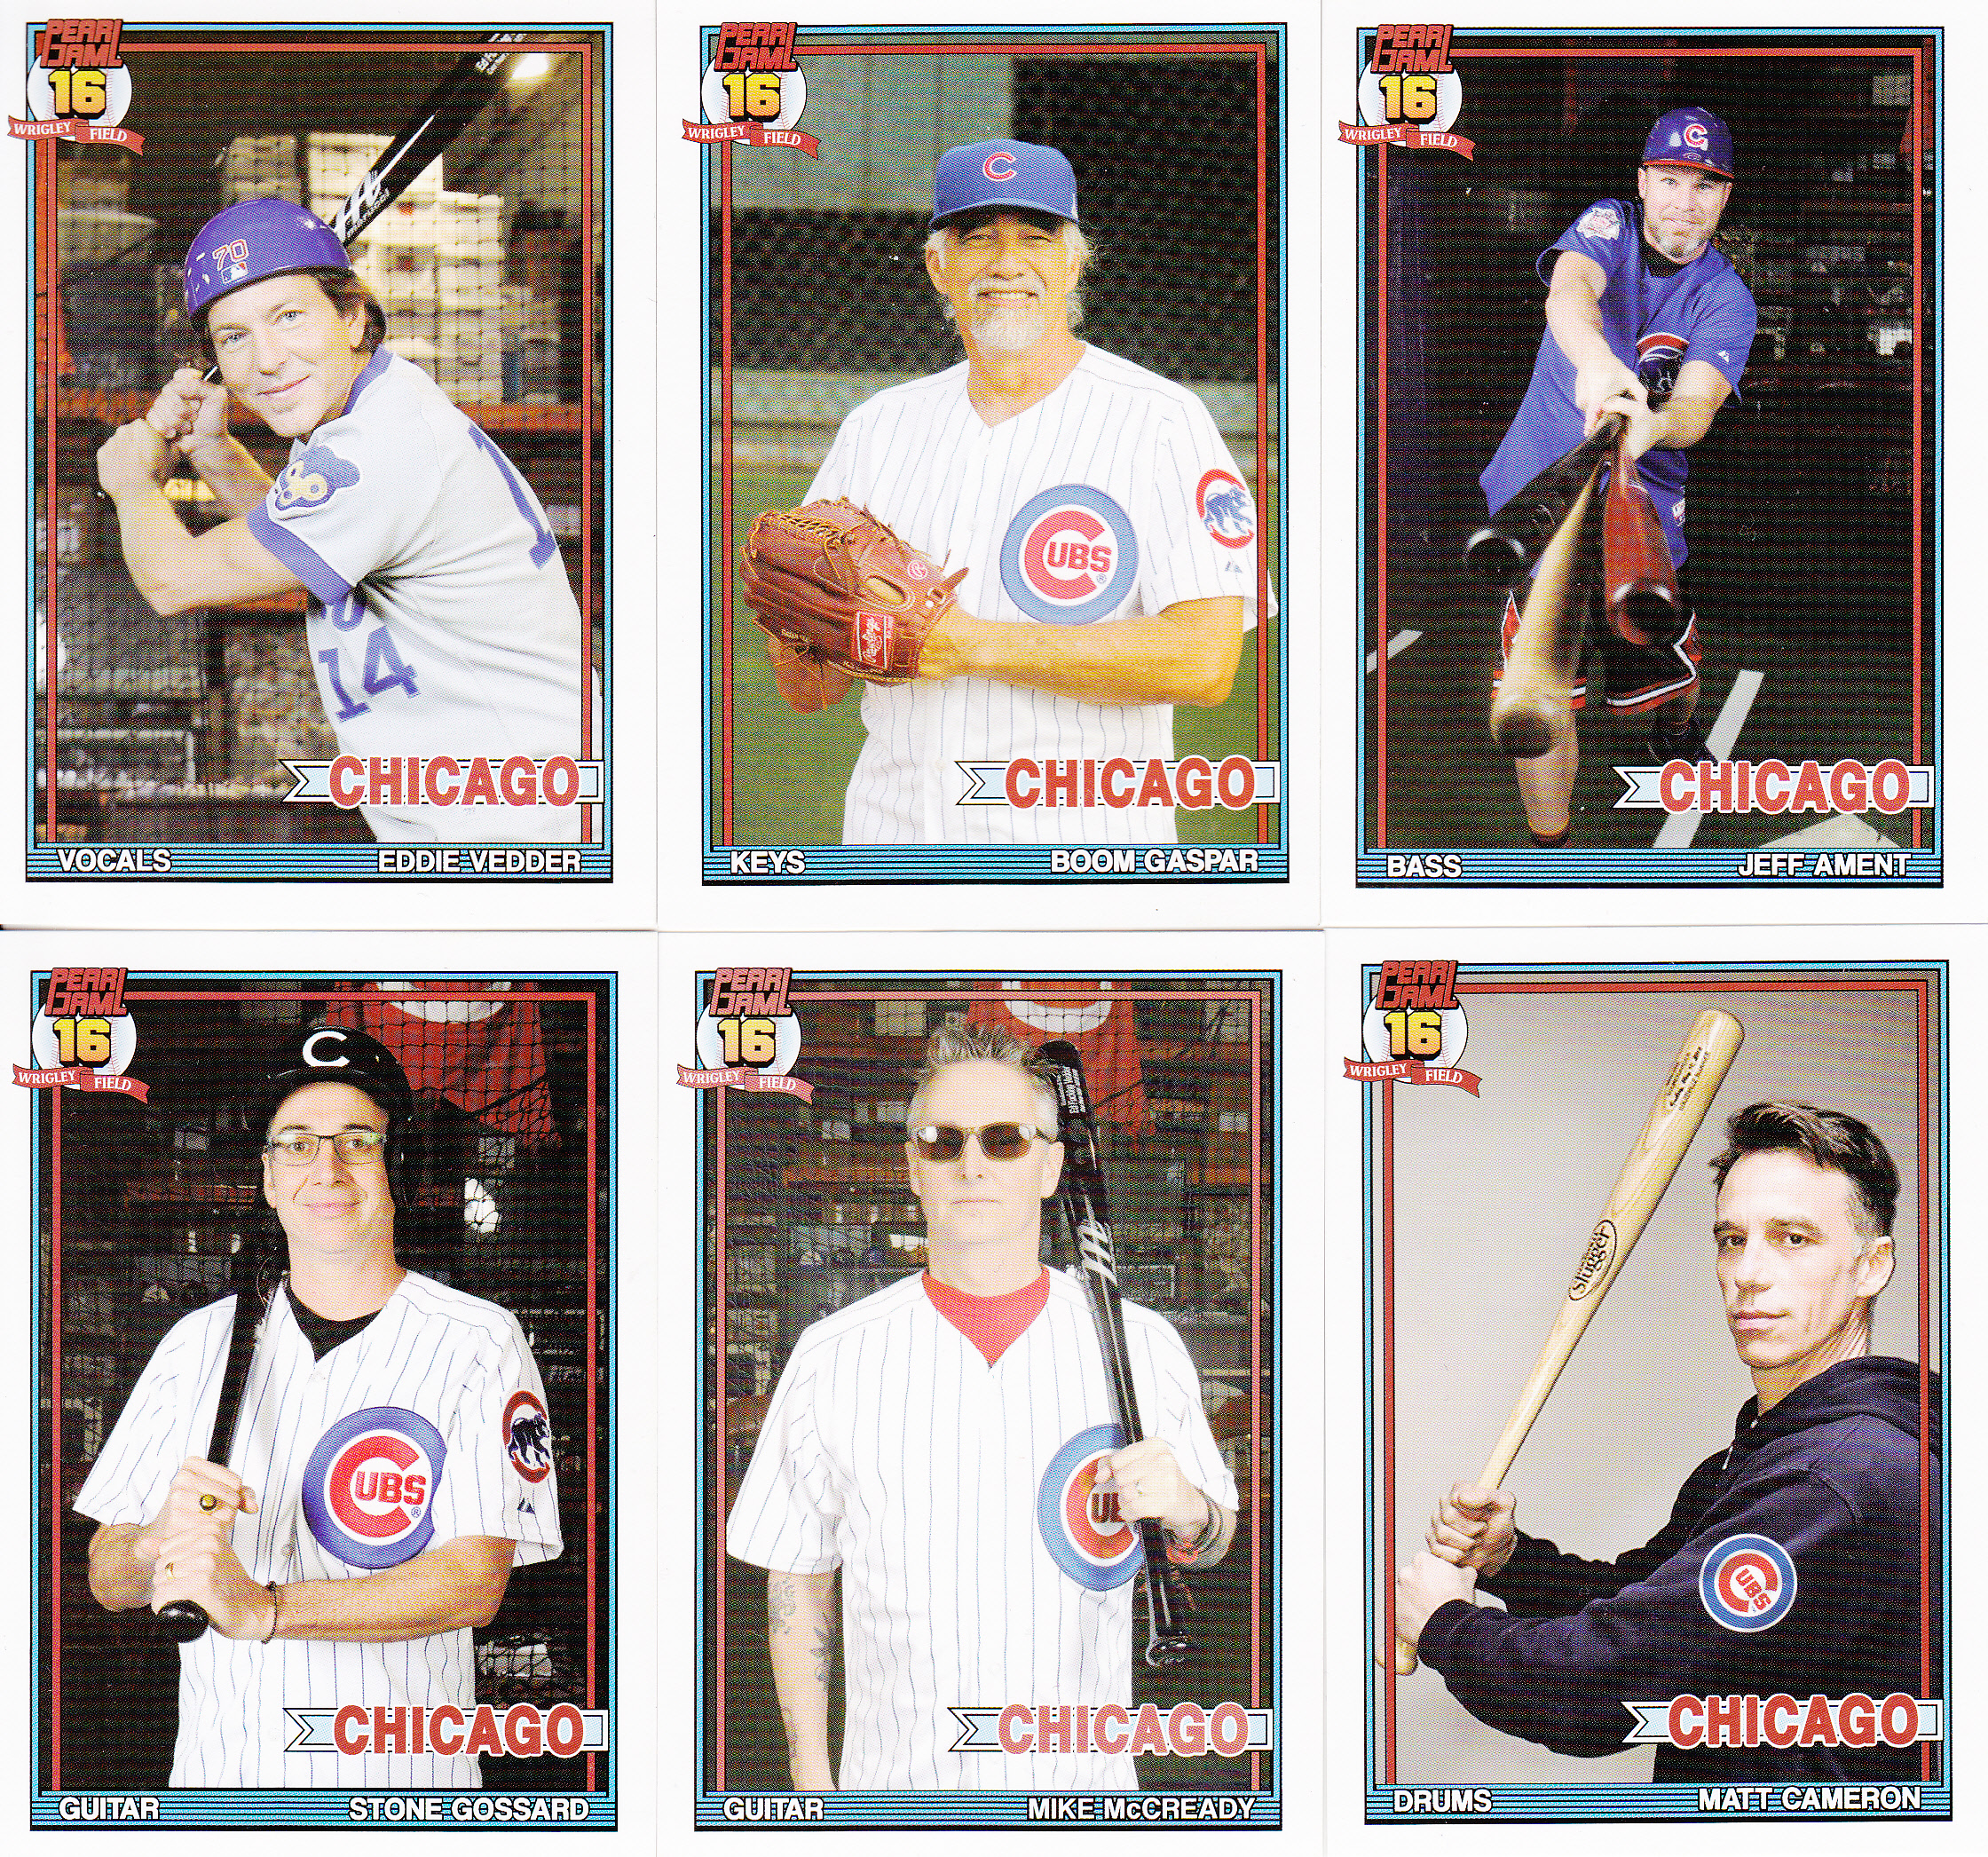 Pearl Jam 1991 Topps Style Wrigley Field Lifetime Topps Project